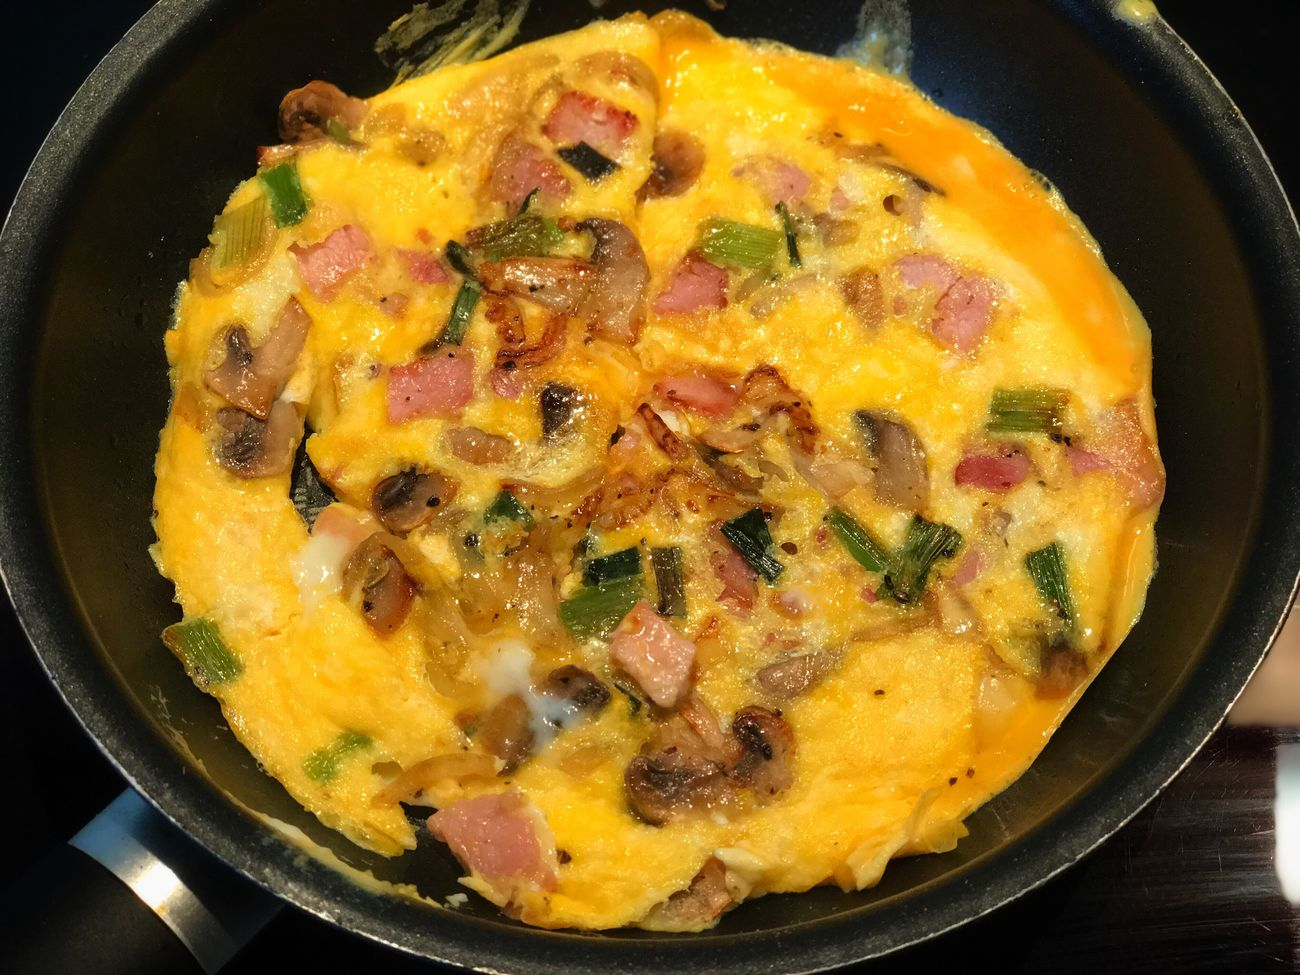 Food Food And Drink Yellow Indoors  No People Close-up Meal Freshness Omelet Ready-to-eat Healthy Eating Skillet- Cooking Pan Casserole Egg Yolk Day Omelette Egg Eggs... Protein Organic Free Range Farm Farming Agriculture